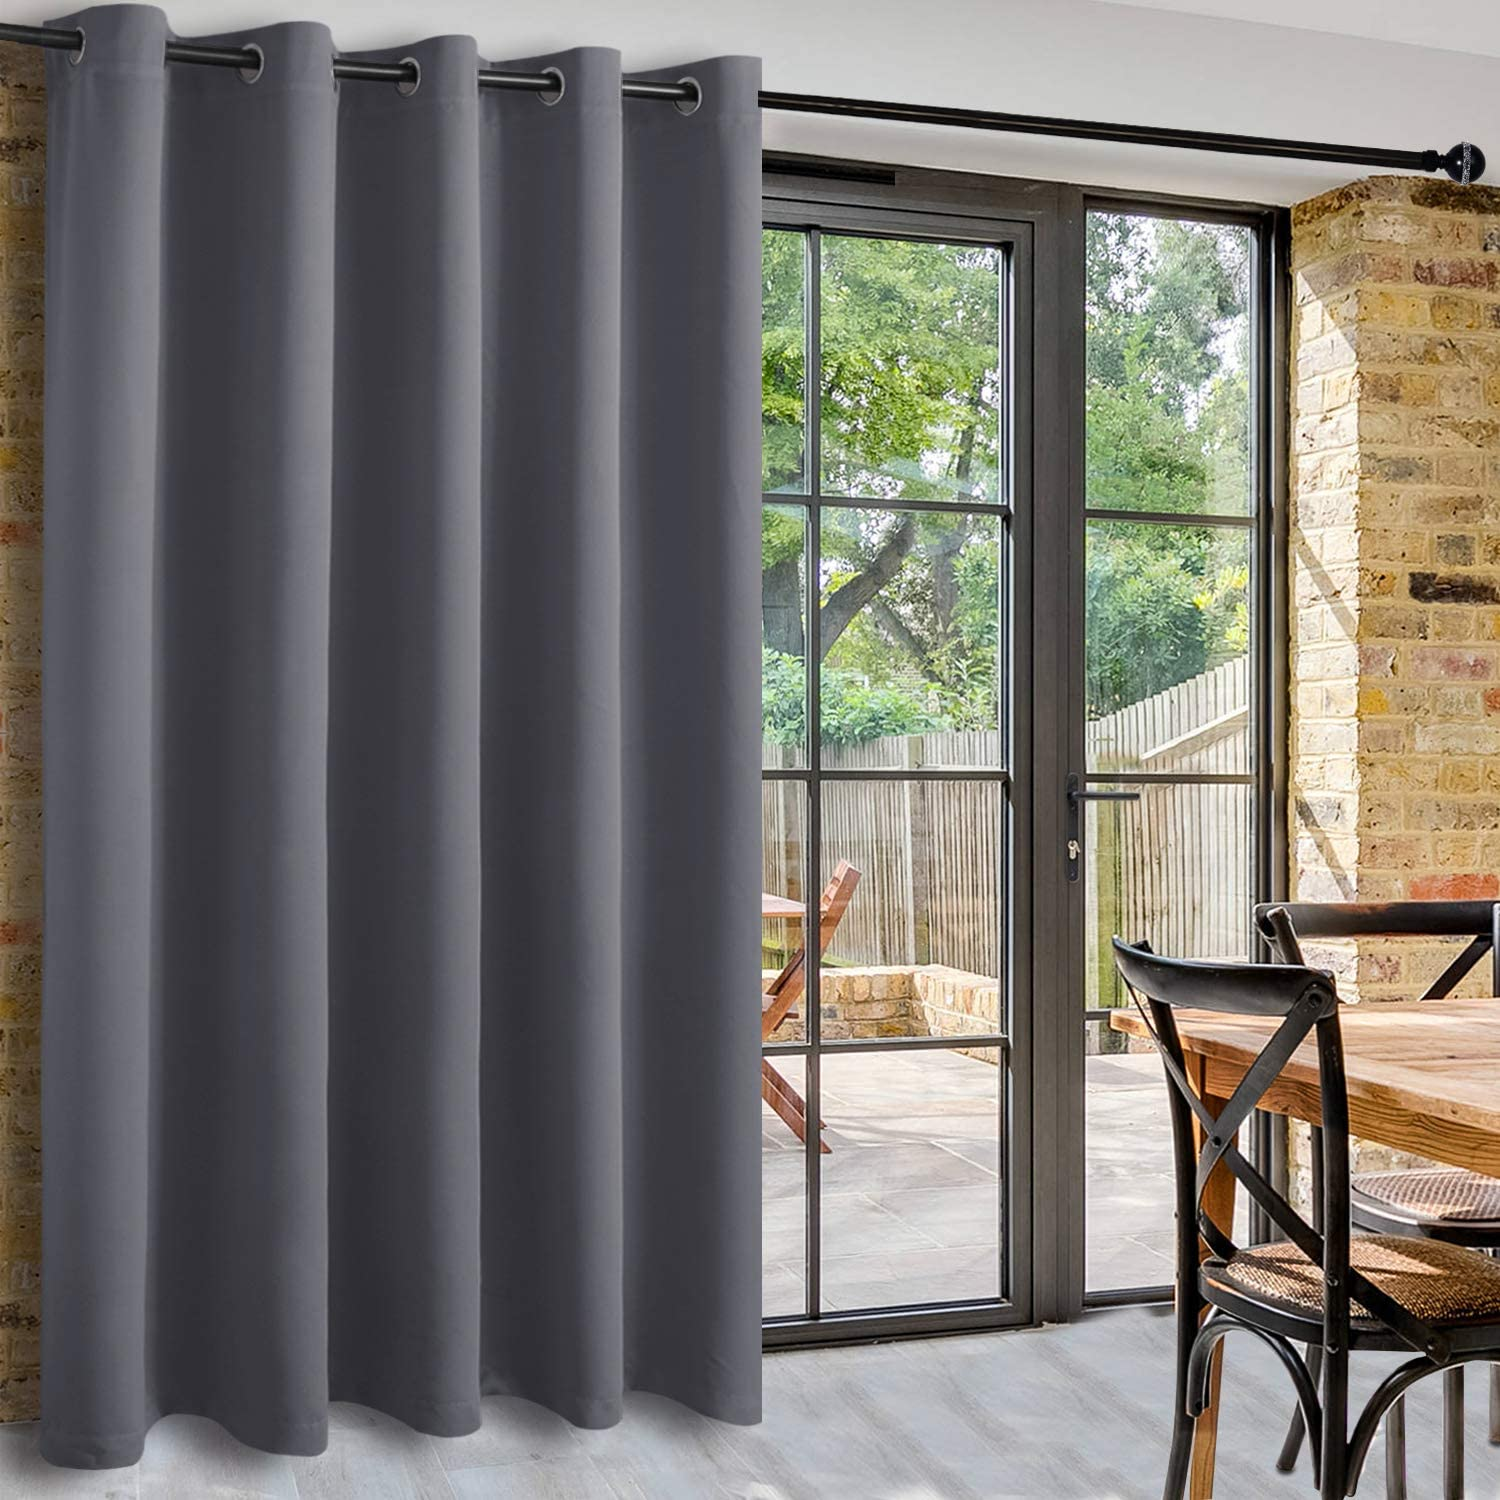 Dwcn Room Divider Blackout Curtain Thermal Grommet Panel With Top For Bedroom Partition Patio Sliding Door Curtains Extra Wide Curtains For Glass Door 6 7ft Wide X 7ft Tall Dark Grey